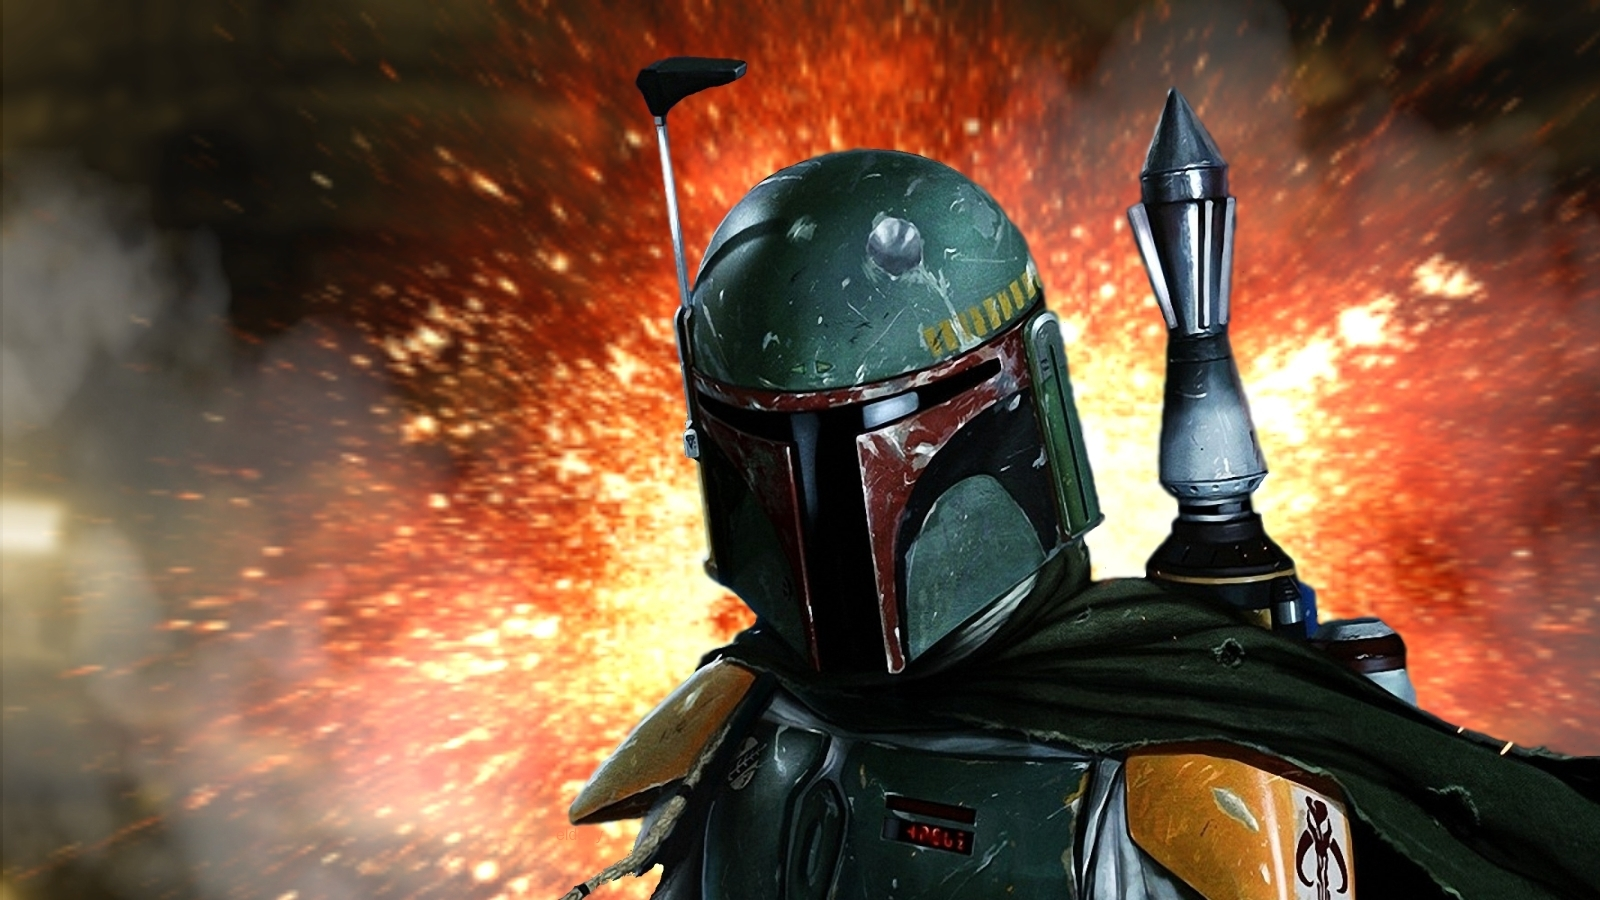 beauty re rendered boba fett wallpaper. Black Bedroom Furniture Sets. Home Design Ideas